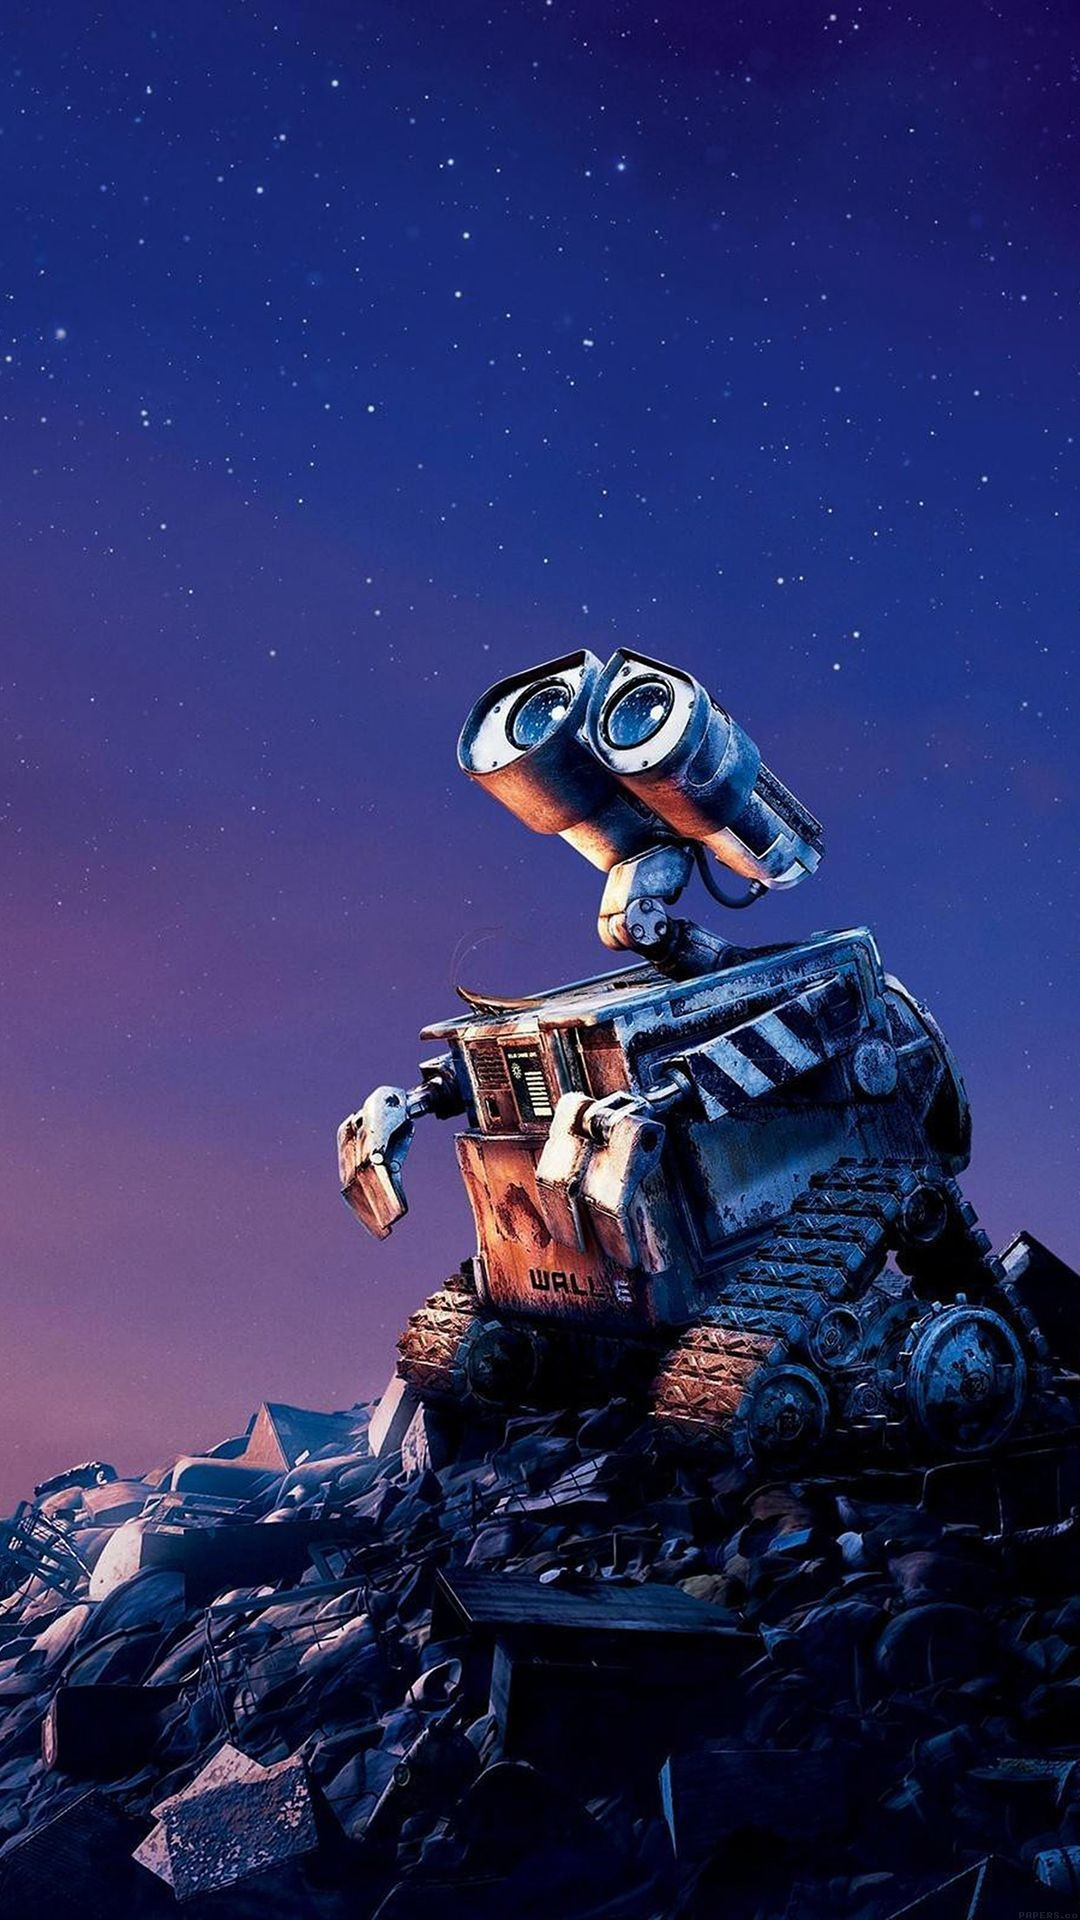 Tap image for more iPhone Disney wallpaper! Wall E Disney want go home – @